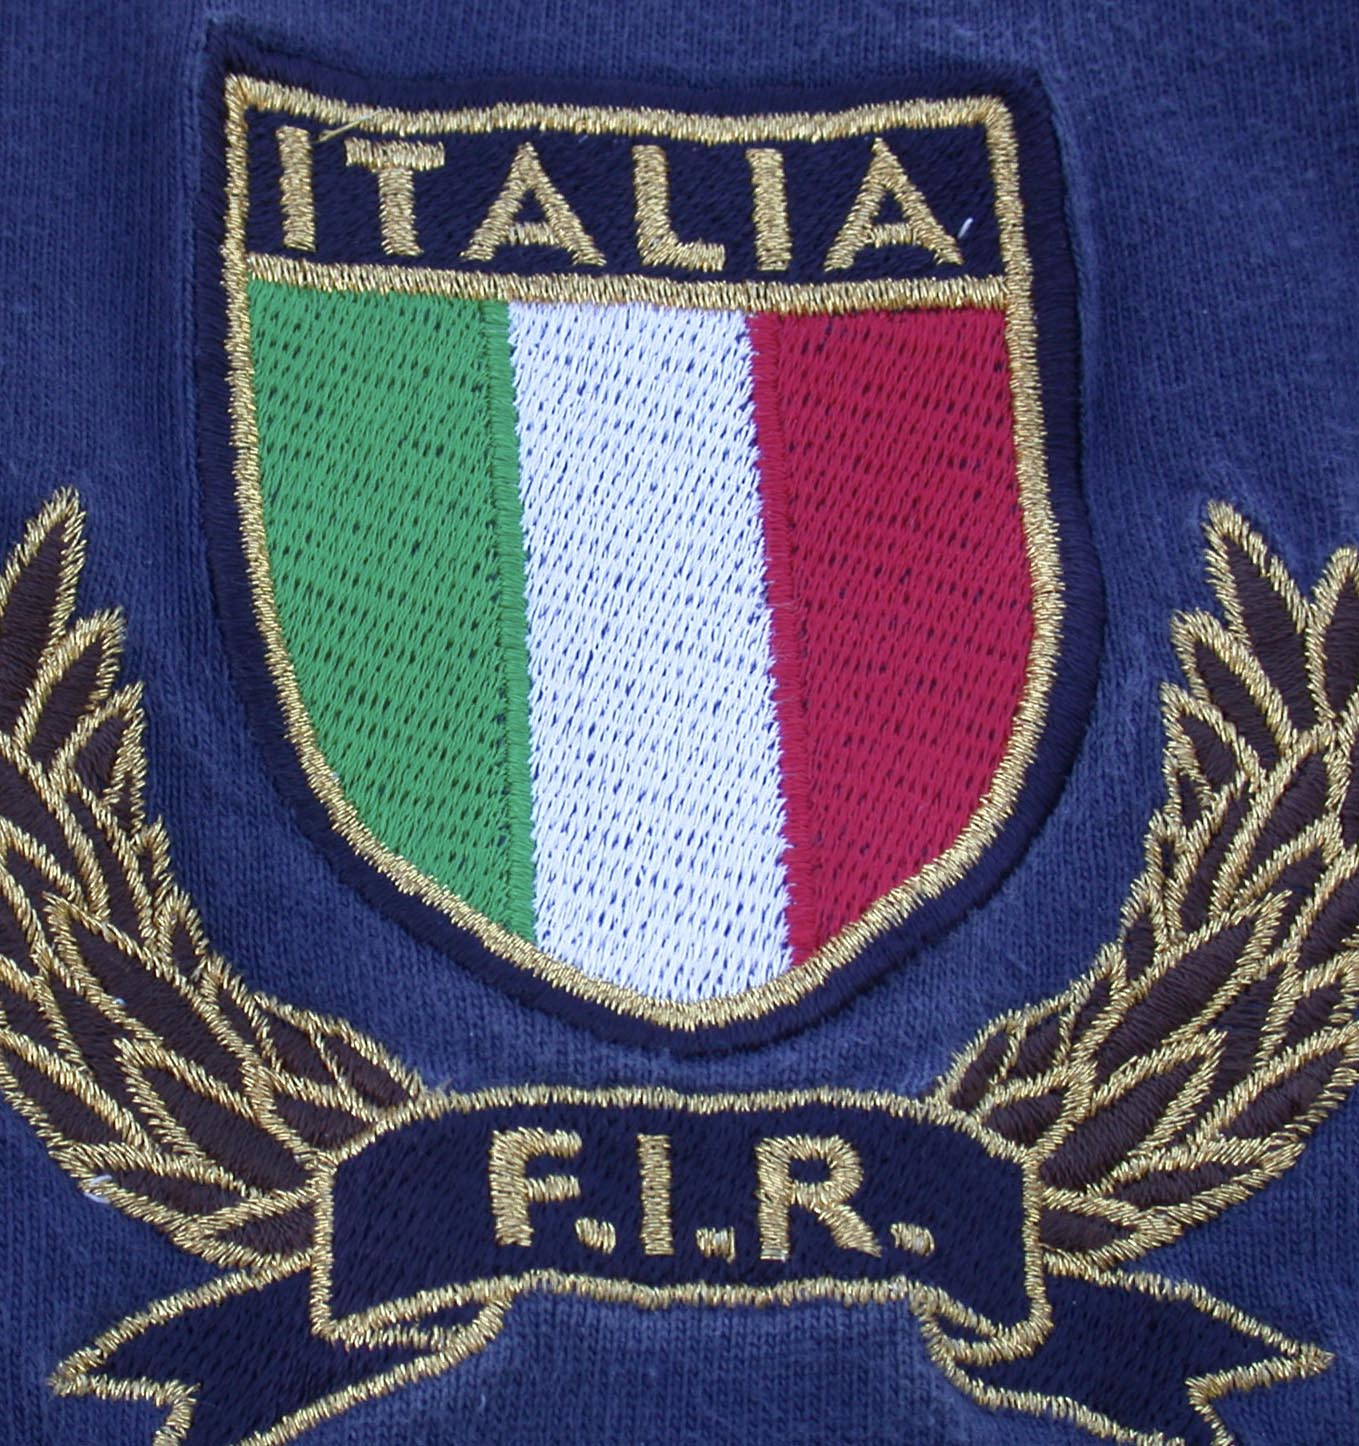 Federation italienne de rugby